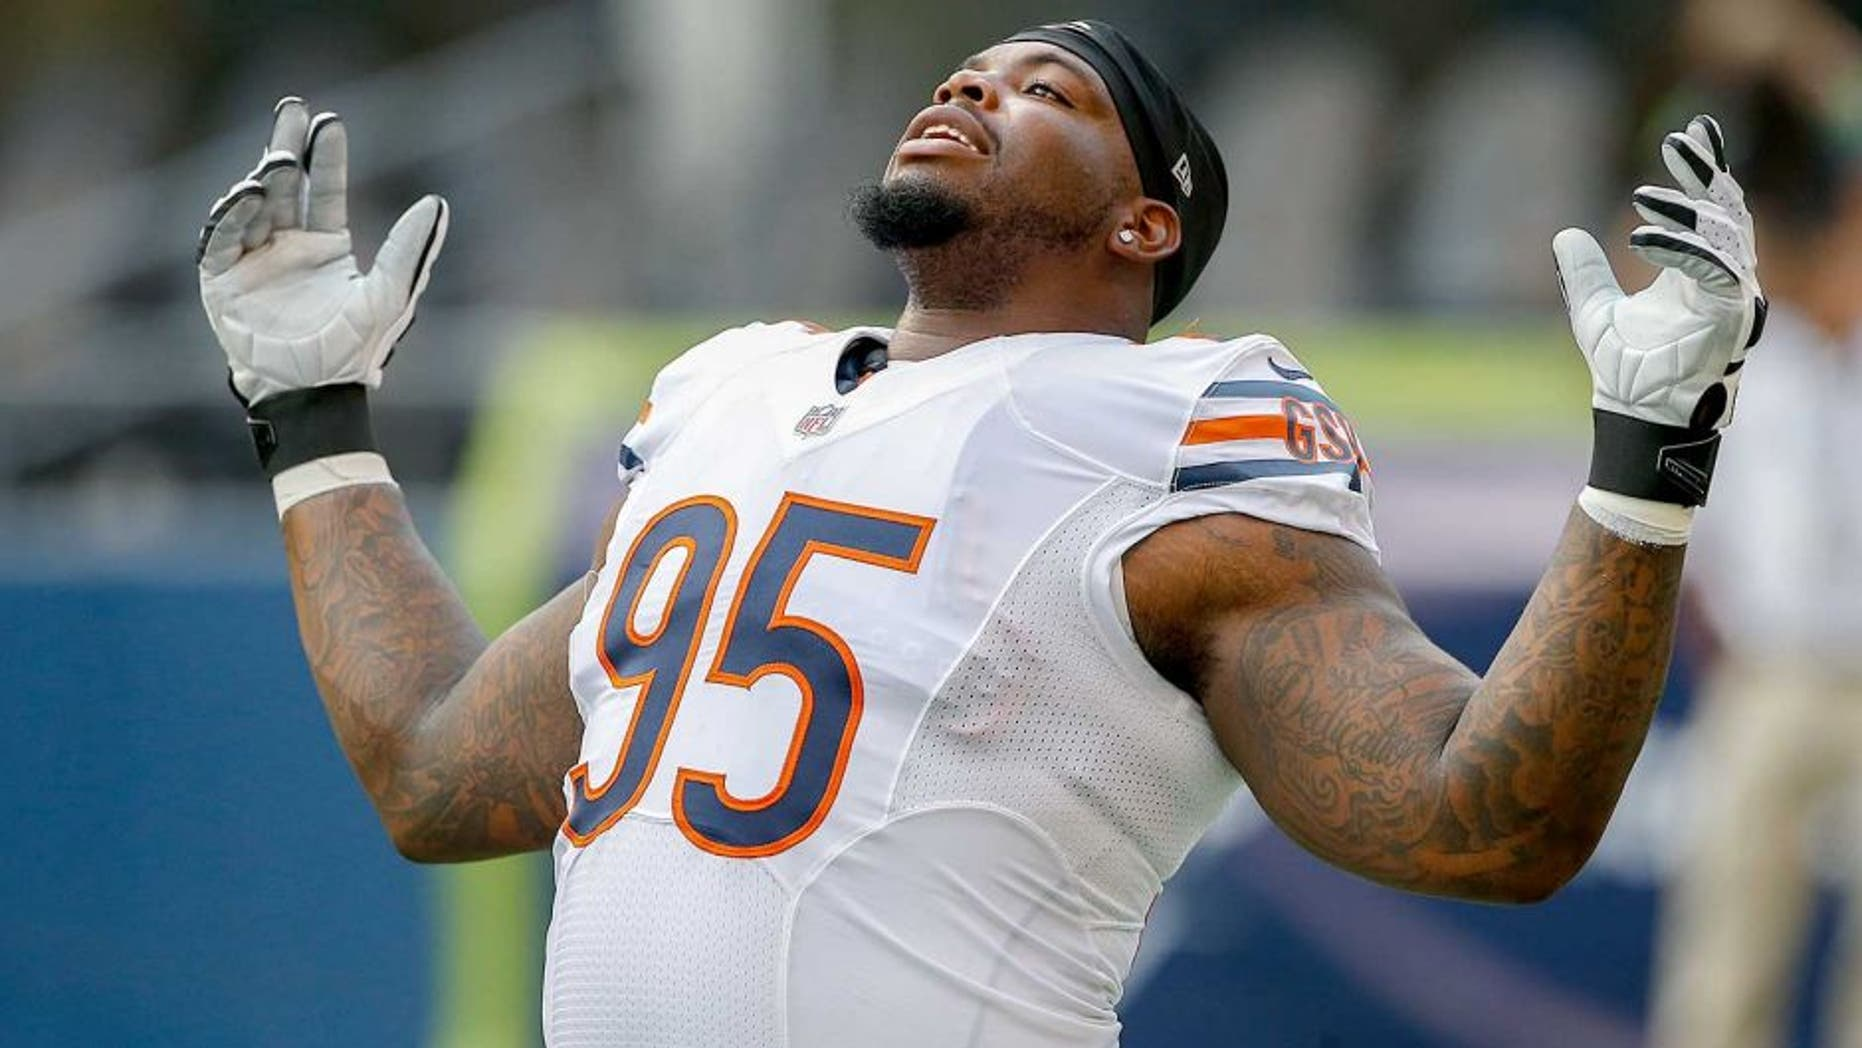 SEATTLE, WA - AUGUST 22: Defensive tackle Ego Ferguson #95 of the Chicago Bears warms up prior to the game against the Seattle Seahawks at CenturyLink Field on August 22, 2014 in Seattle, Washington. (Photo by Otto Greule Jr/Getty Images)